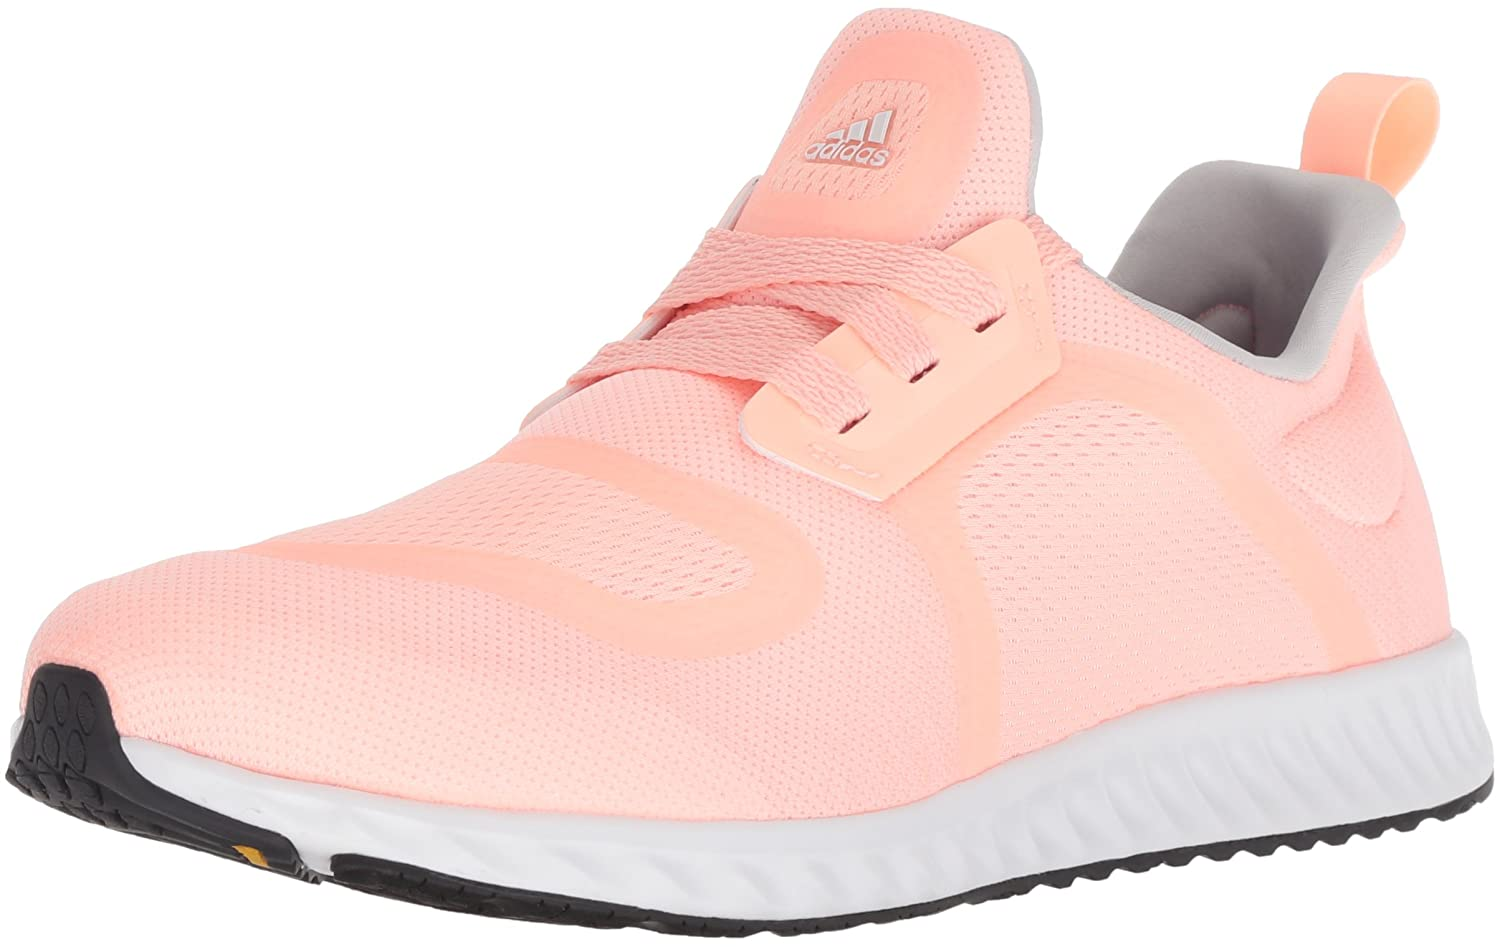 adidas Women's Edge Lux Clima Running Shoe B077XJCGQV 12 B(M) US|Clear Orange/White/Trace Royal